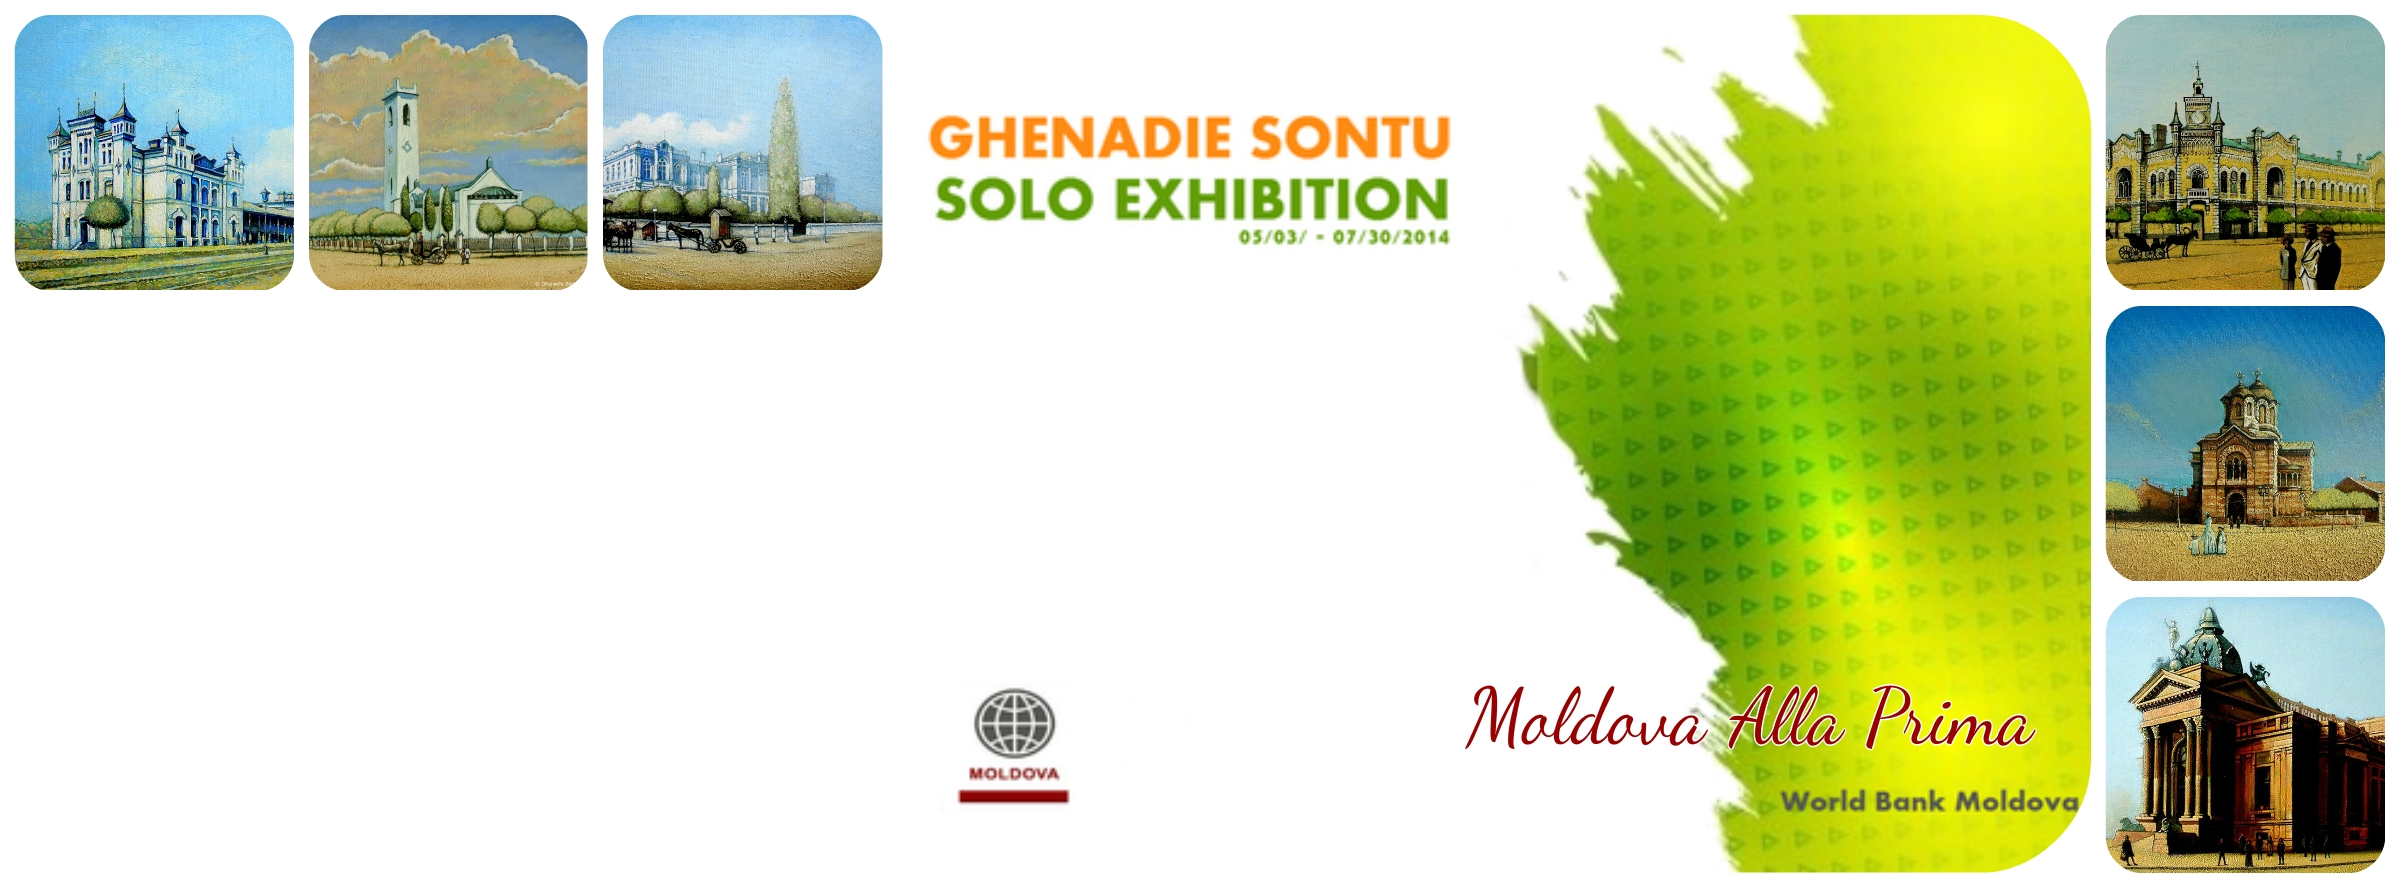 Ghenadie Sontu Solo Exhibition at  World Bank Moldova , 05/03 - 09/15/2014, , #20/1, Pushkin st., Chisinau, Moldova